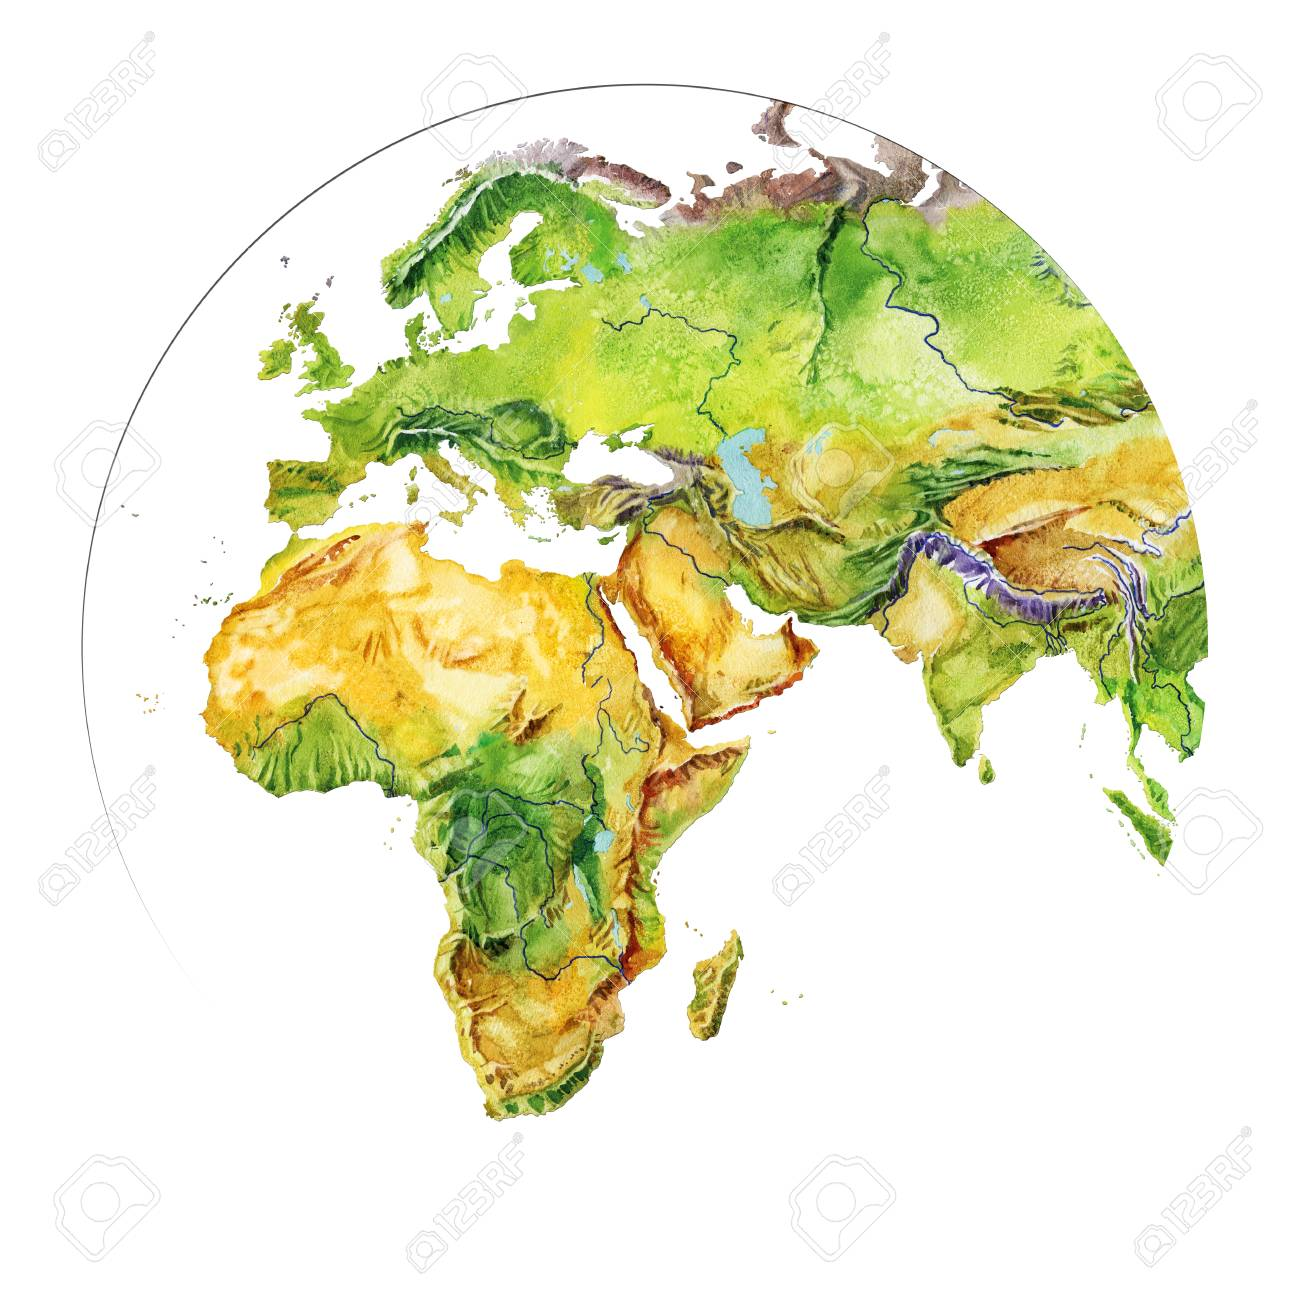 Watercolor Geographical Map Of The World. Physical Map Of The ...